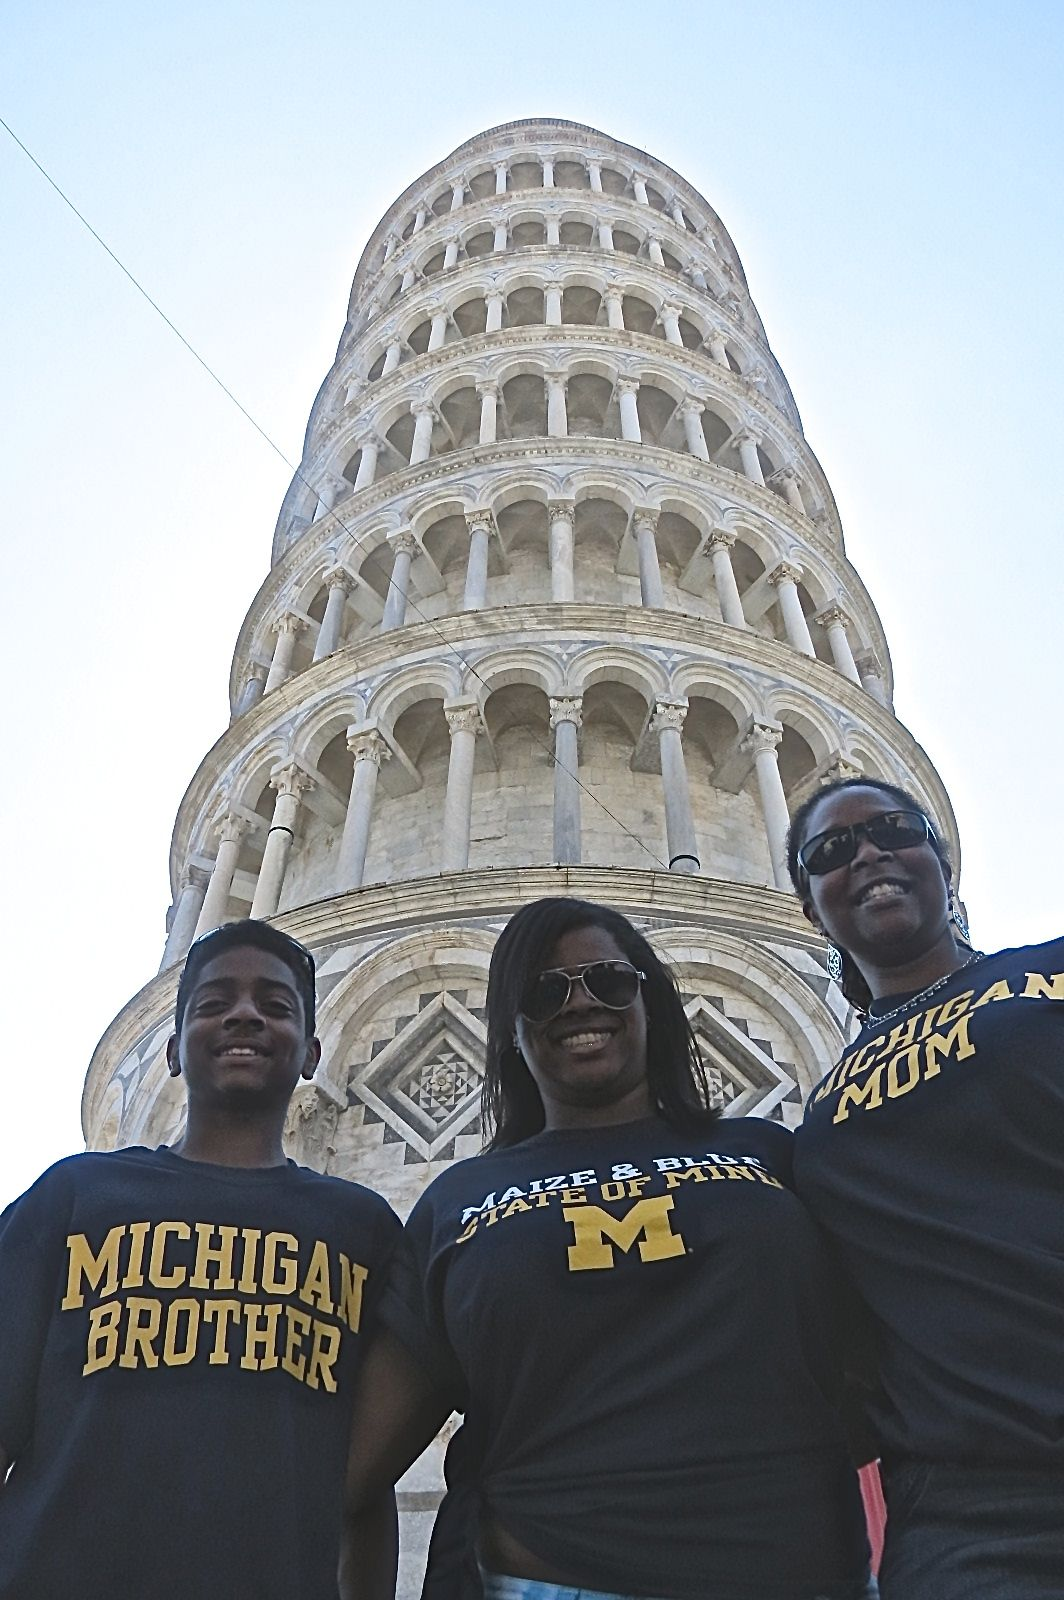 Rozelle Hegeman-Dingle, PHARMD'93 (right) and her son John and daughter Ryan (middle), who is attending U-M beginning this fall, proudly wear their U-M gear while standing in front of the Leaning Tower of Pisa in Italy.